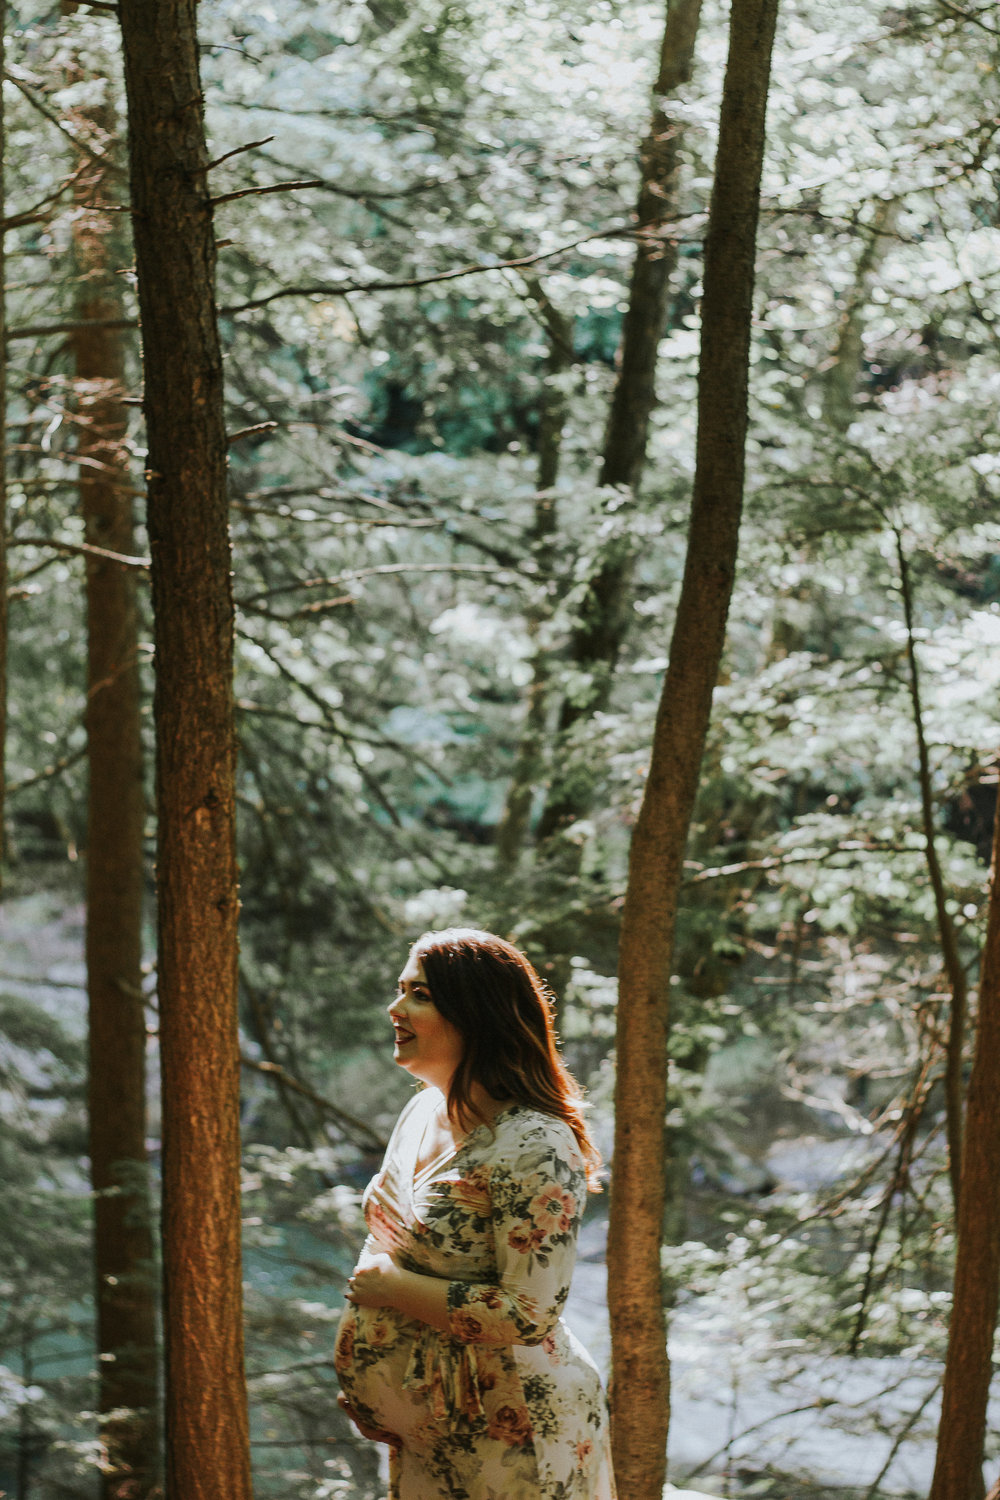 Mama to be holding belly in woods, Artistic + Woodsy Maternity Session | Sarah P Thomas Photography